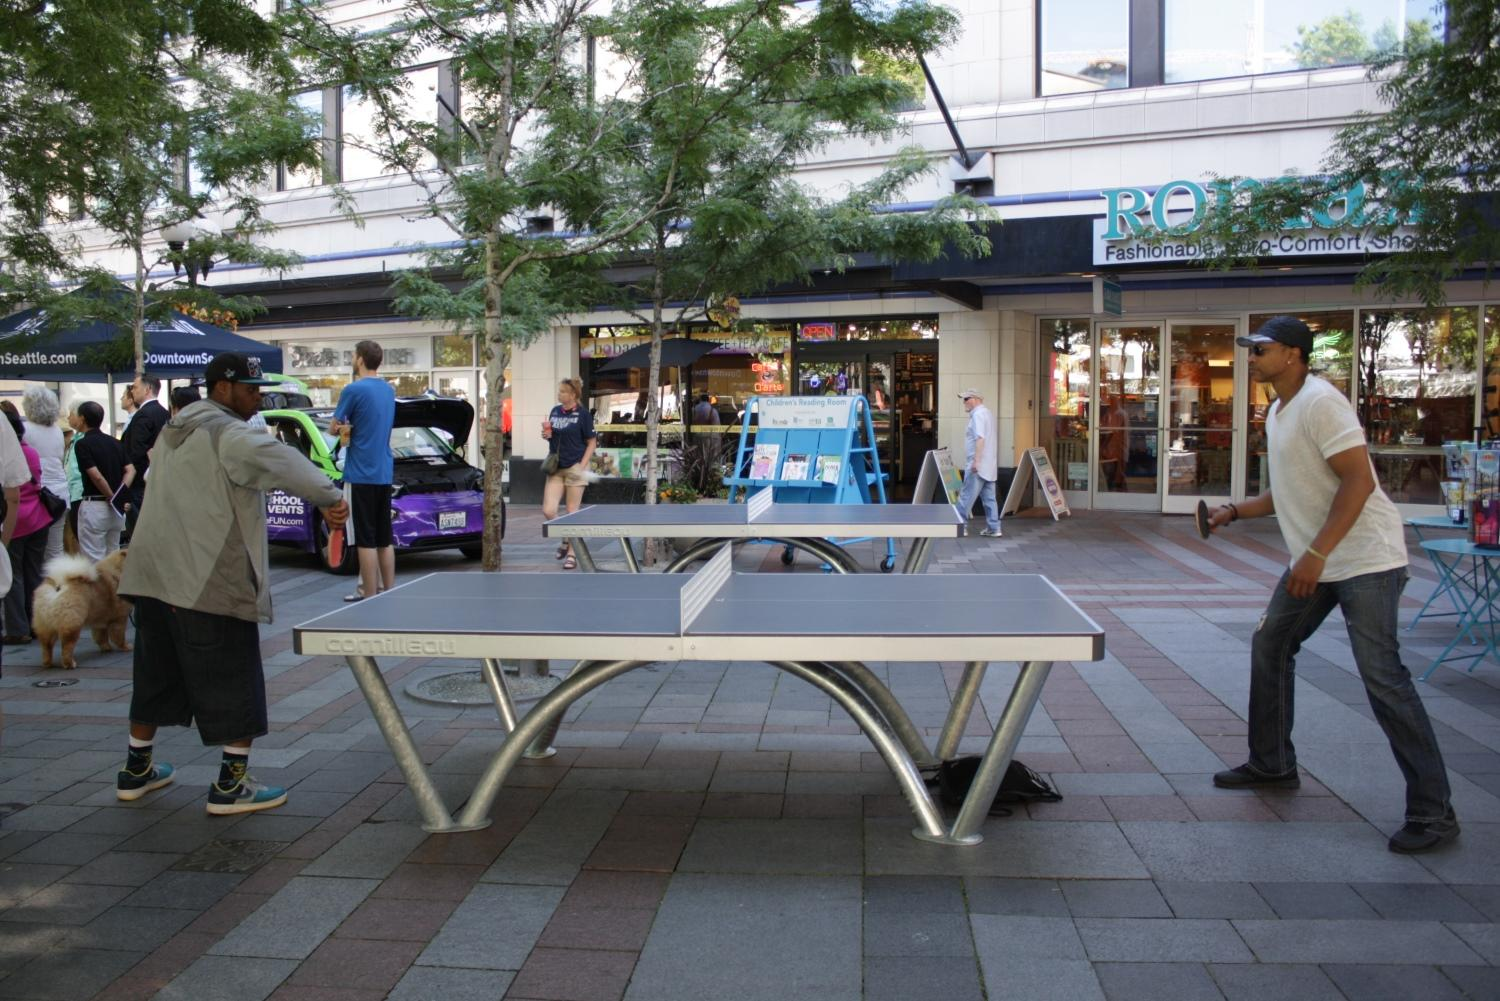 The Ping Pong Tables At Westlake Park Feature Robust Metal Legs. An Earlier  Iteration With Flimsy Legs Didnu0027t Stand Up So Well When People Tried To  Sleep On ...